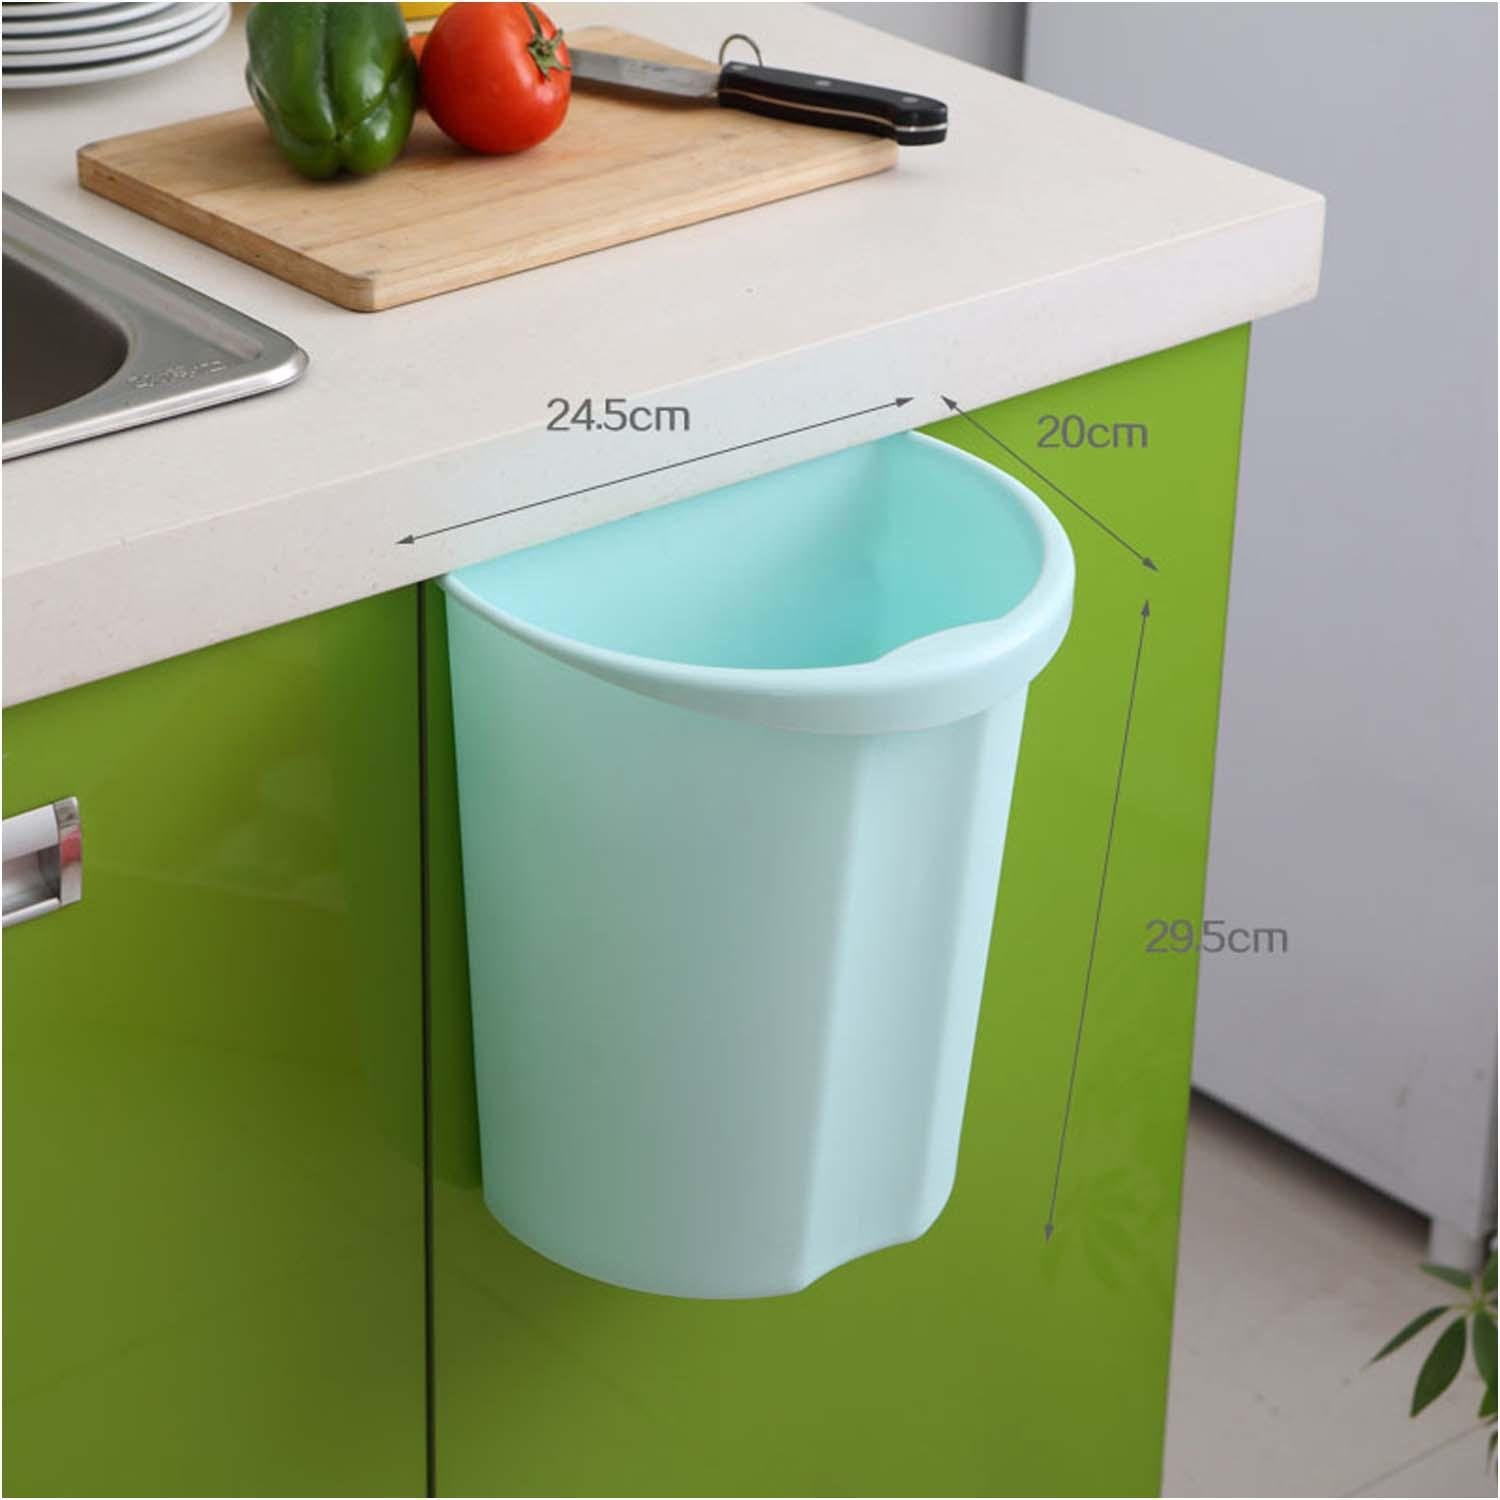 OOFYHOME Home wall-mounted trash cans, with no cover thick plastic cabinet large storage barrels, the kitchen can be linked to trash , E by OOFYHOME